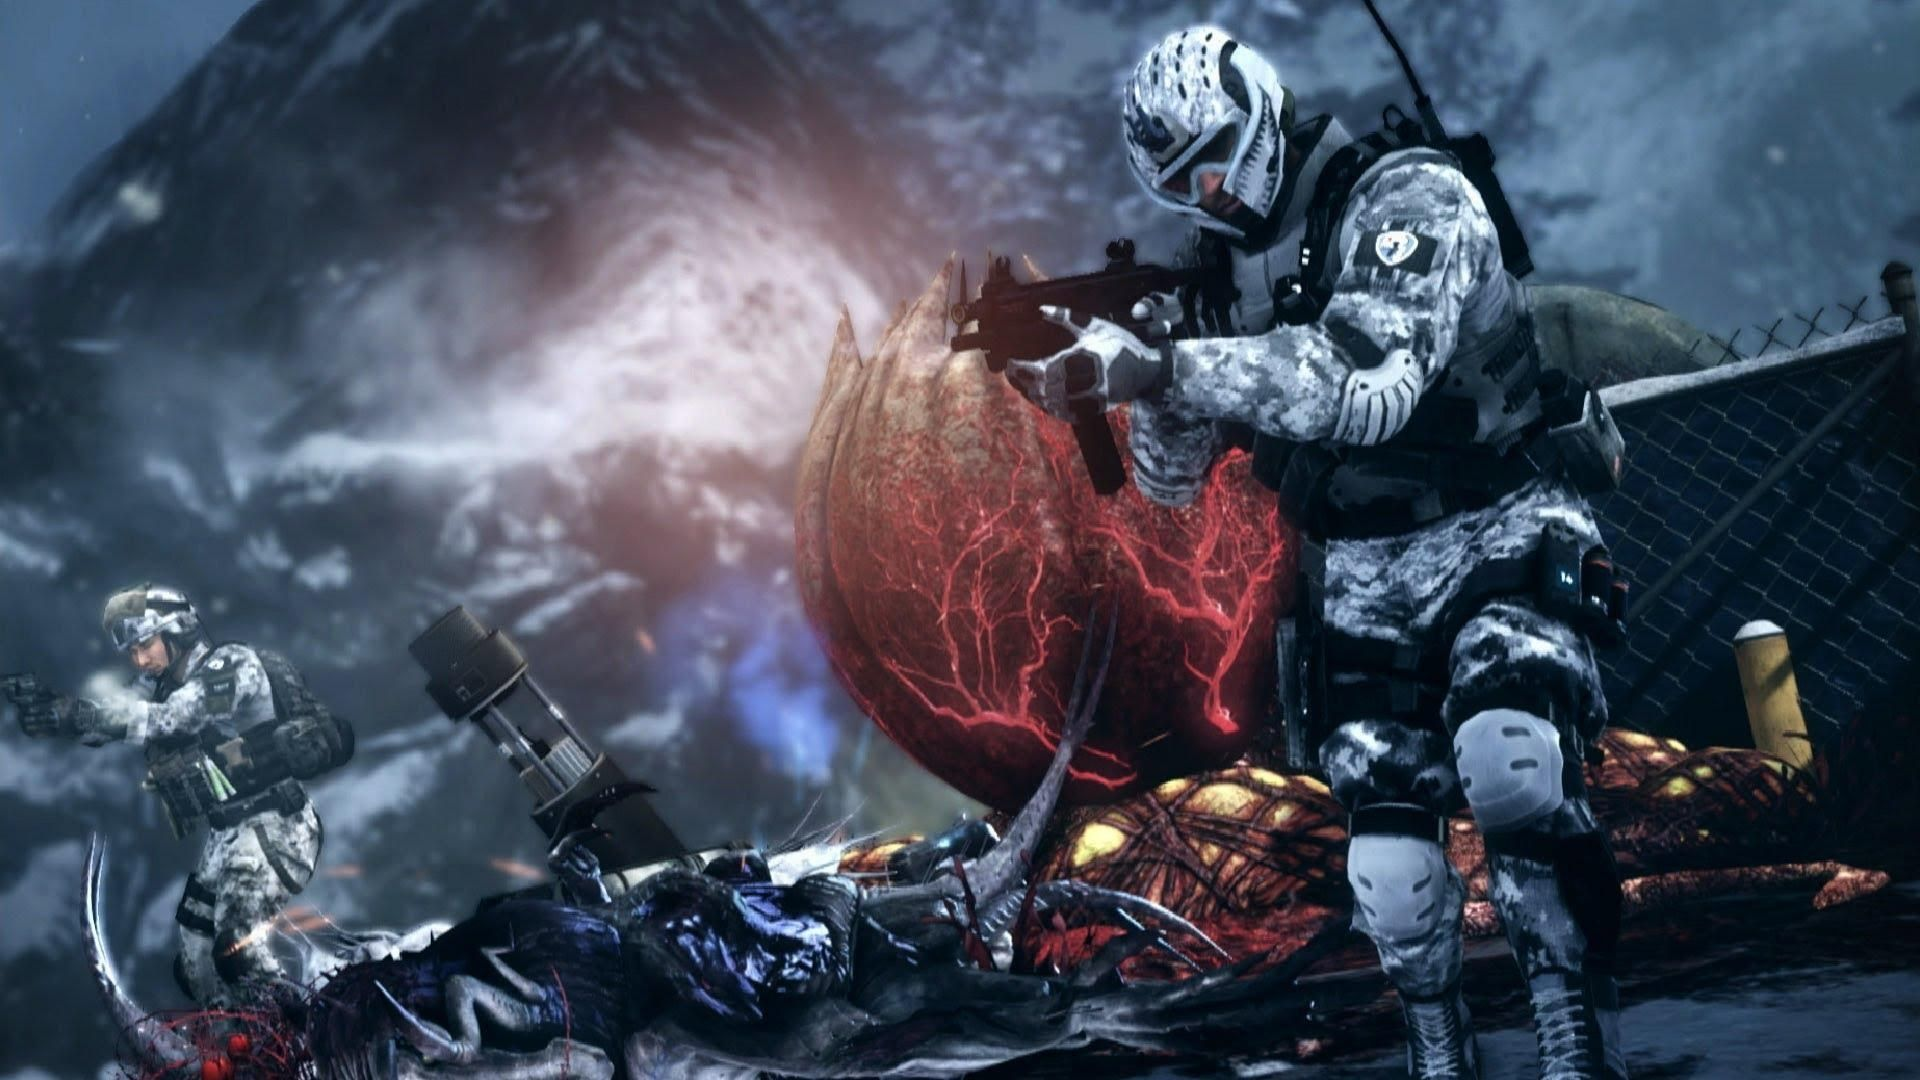 Cod Hd Widescreen Wallpapers Backgrounds Call Of Duty Ghosts Call Of Duty The Wolf Among Us